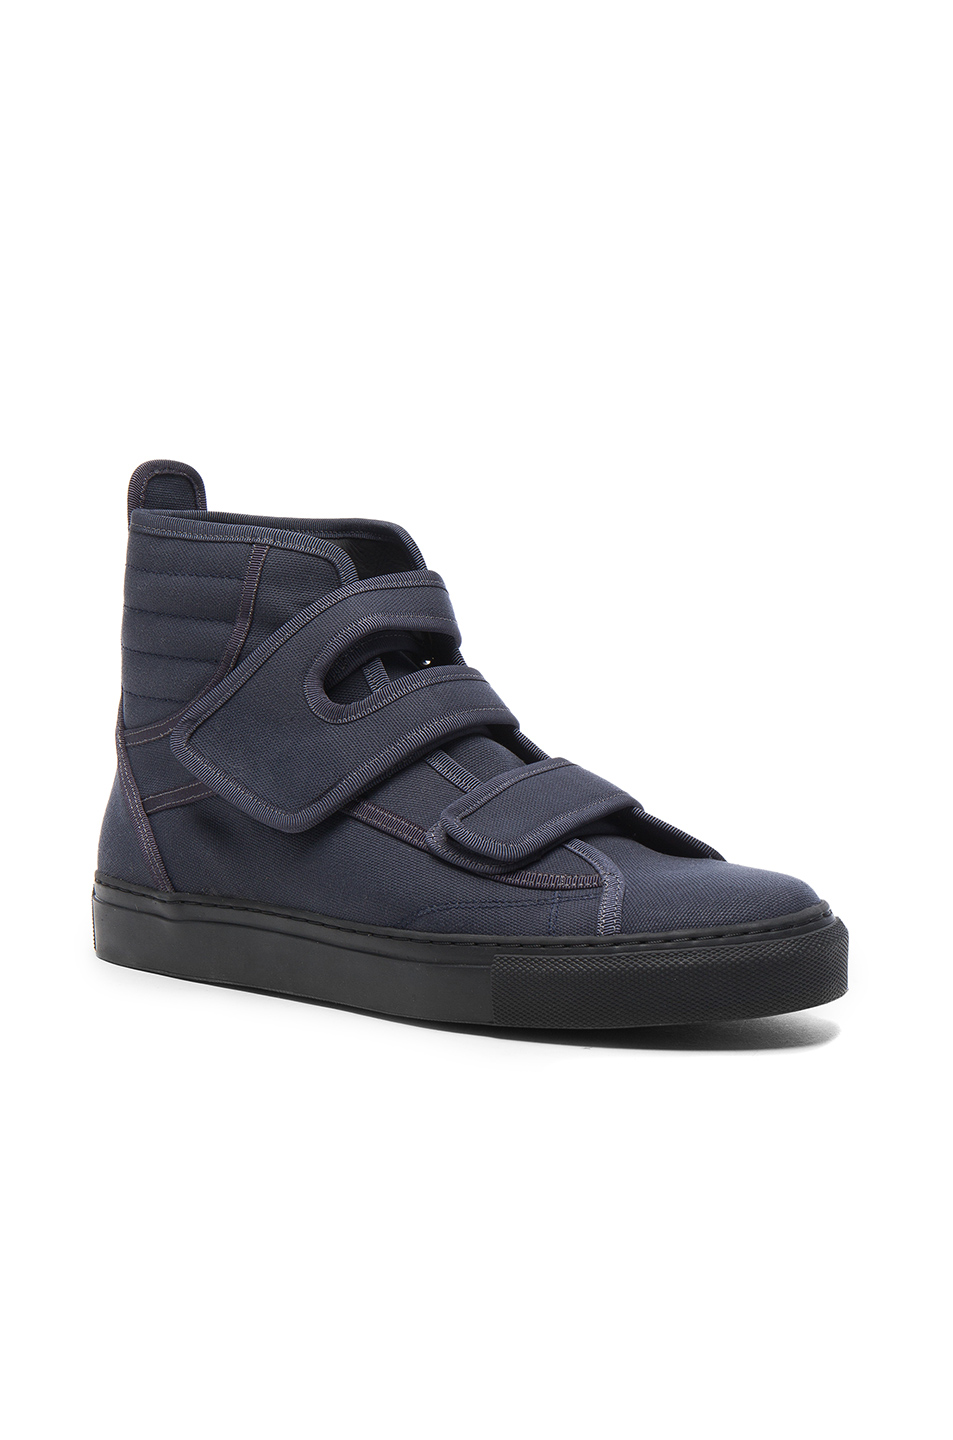 Raf Simons High Top Velcro Sneakers in Gray